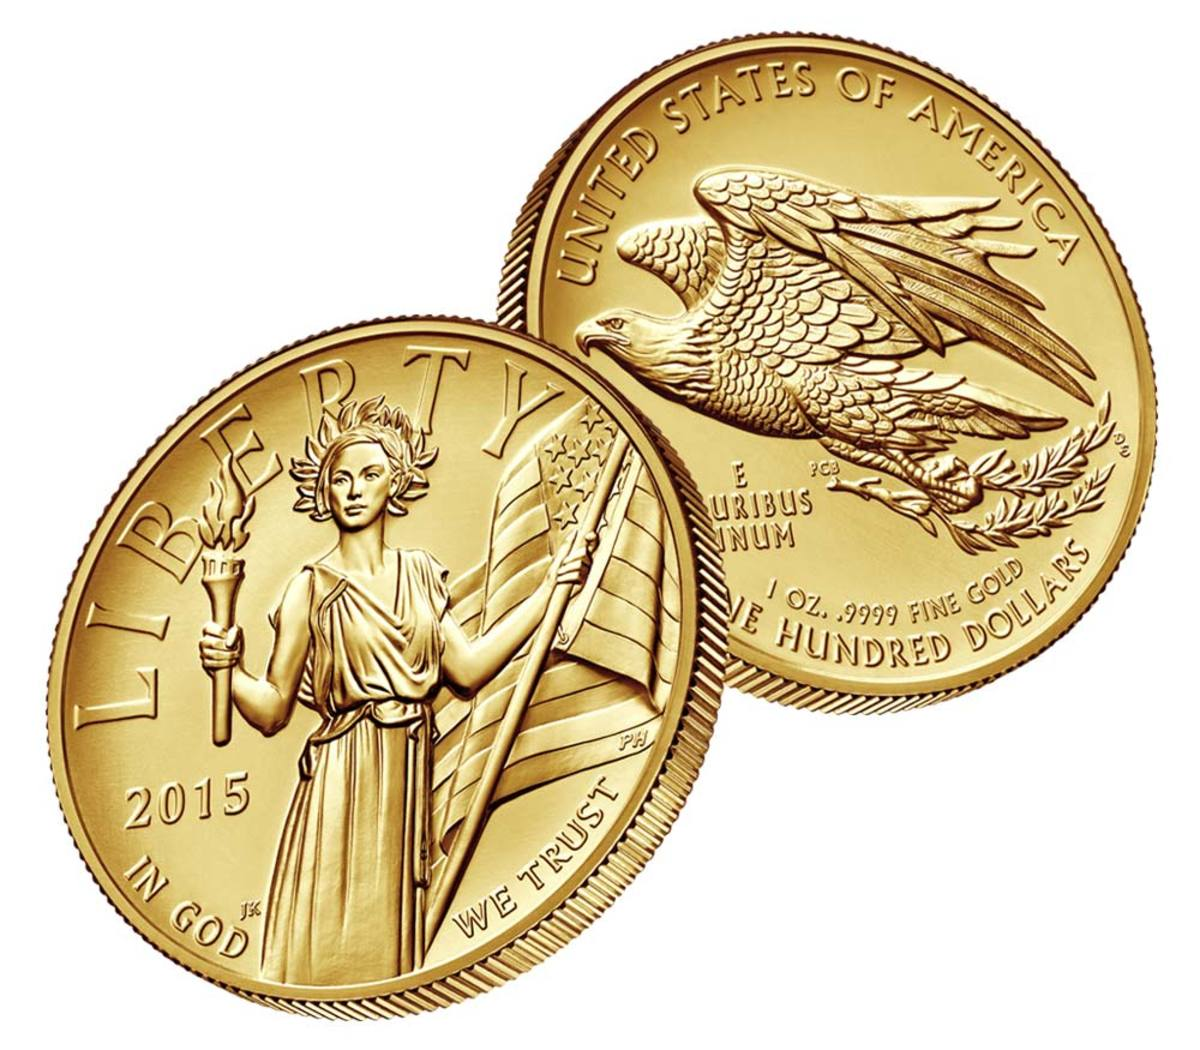 The 2015-W High Relief is still available at the Mint but on back order. Some collectors are willing to pay much more to get theirs right away.